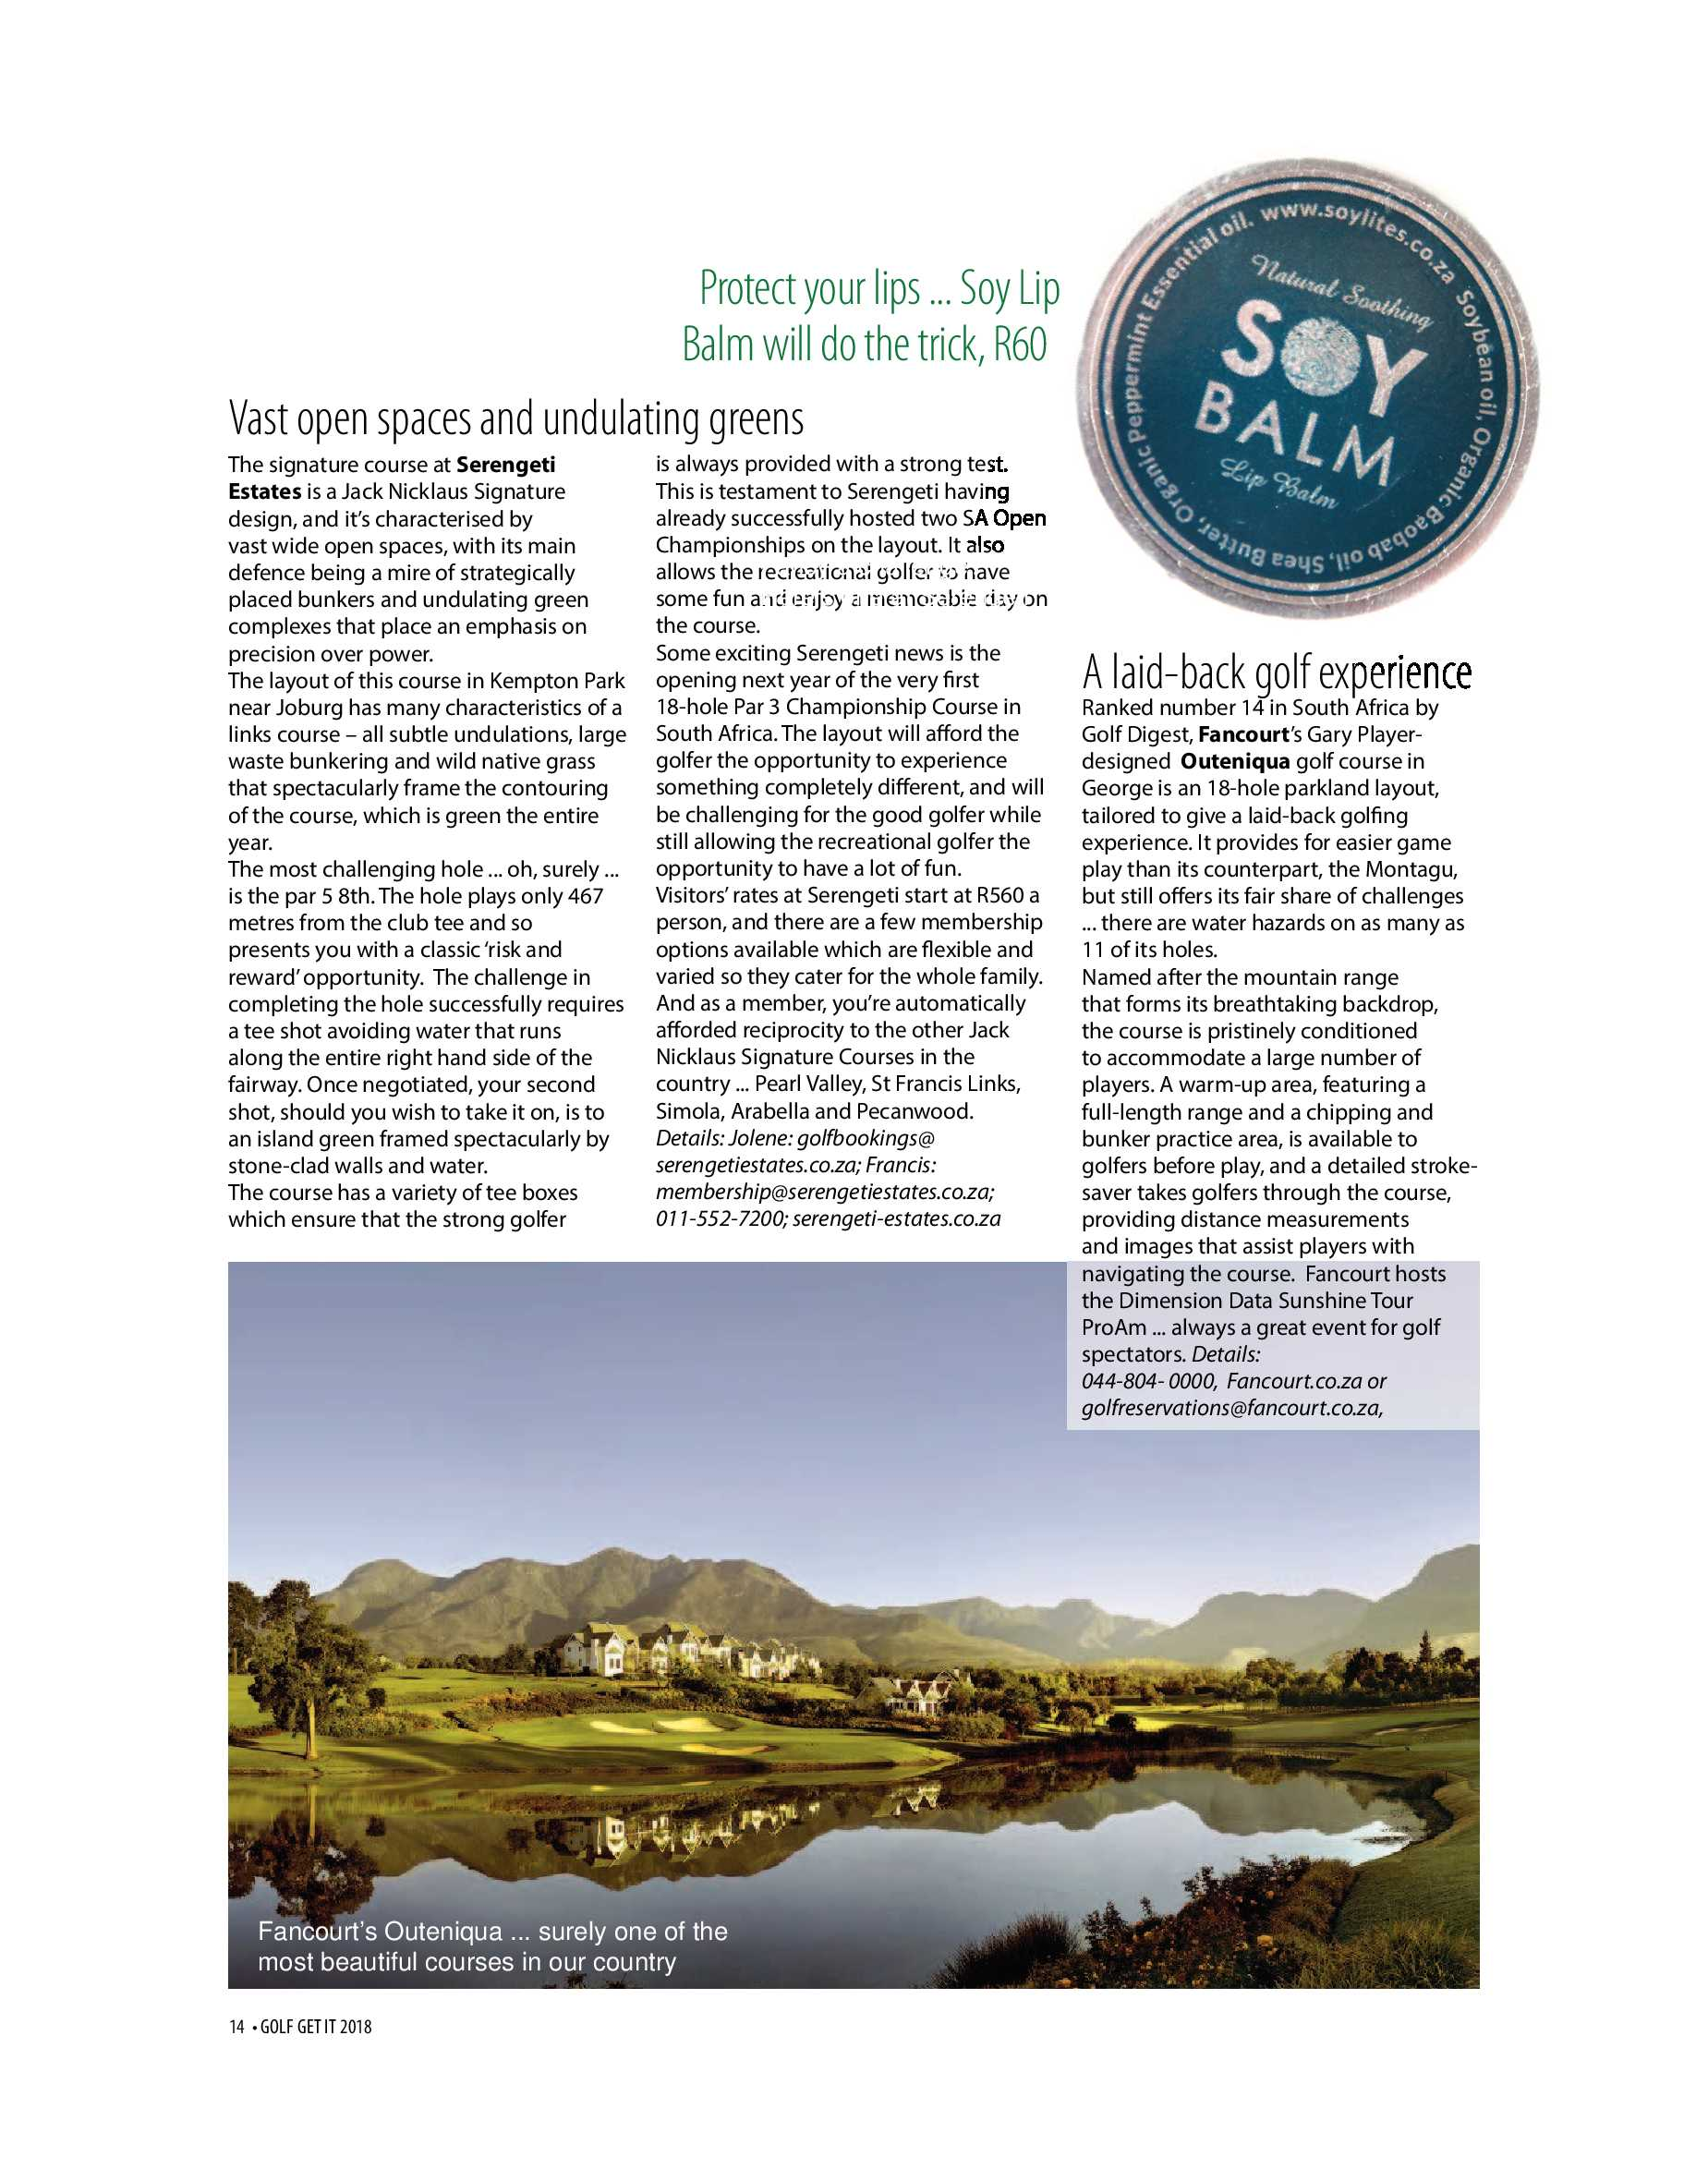 get-it-golf-epapers-page-14